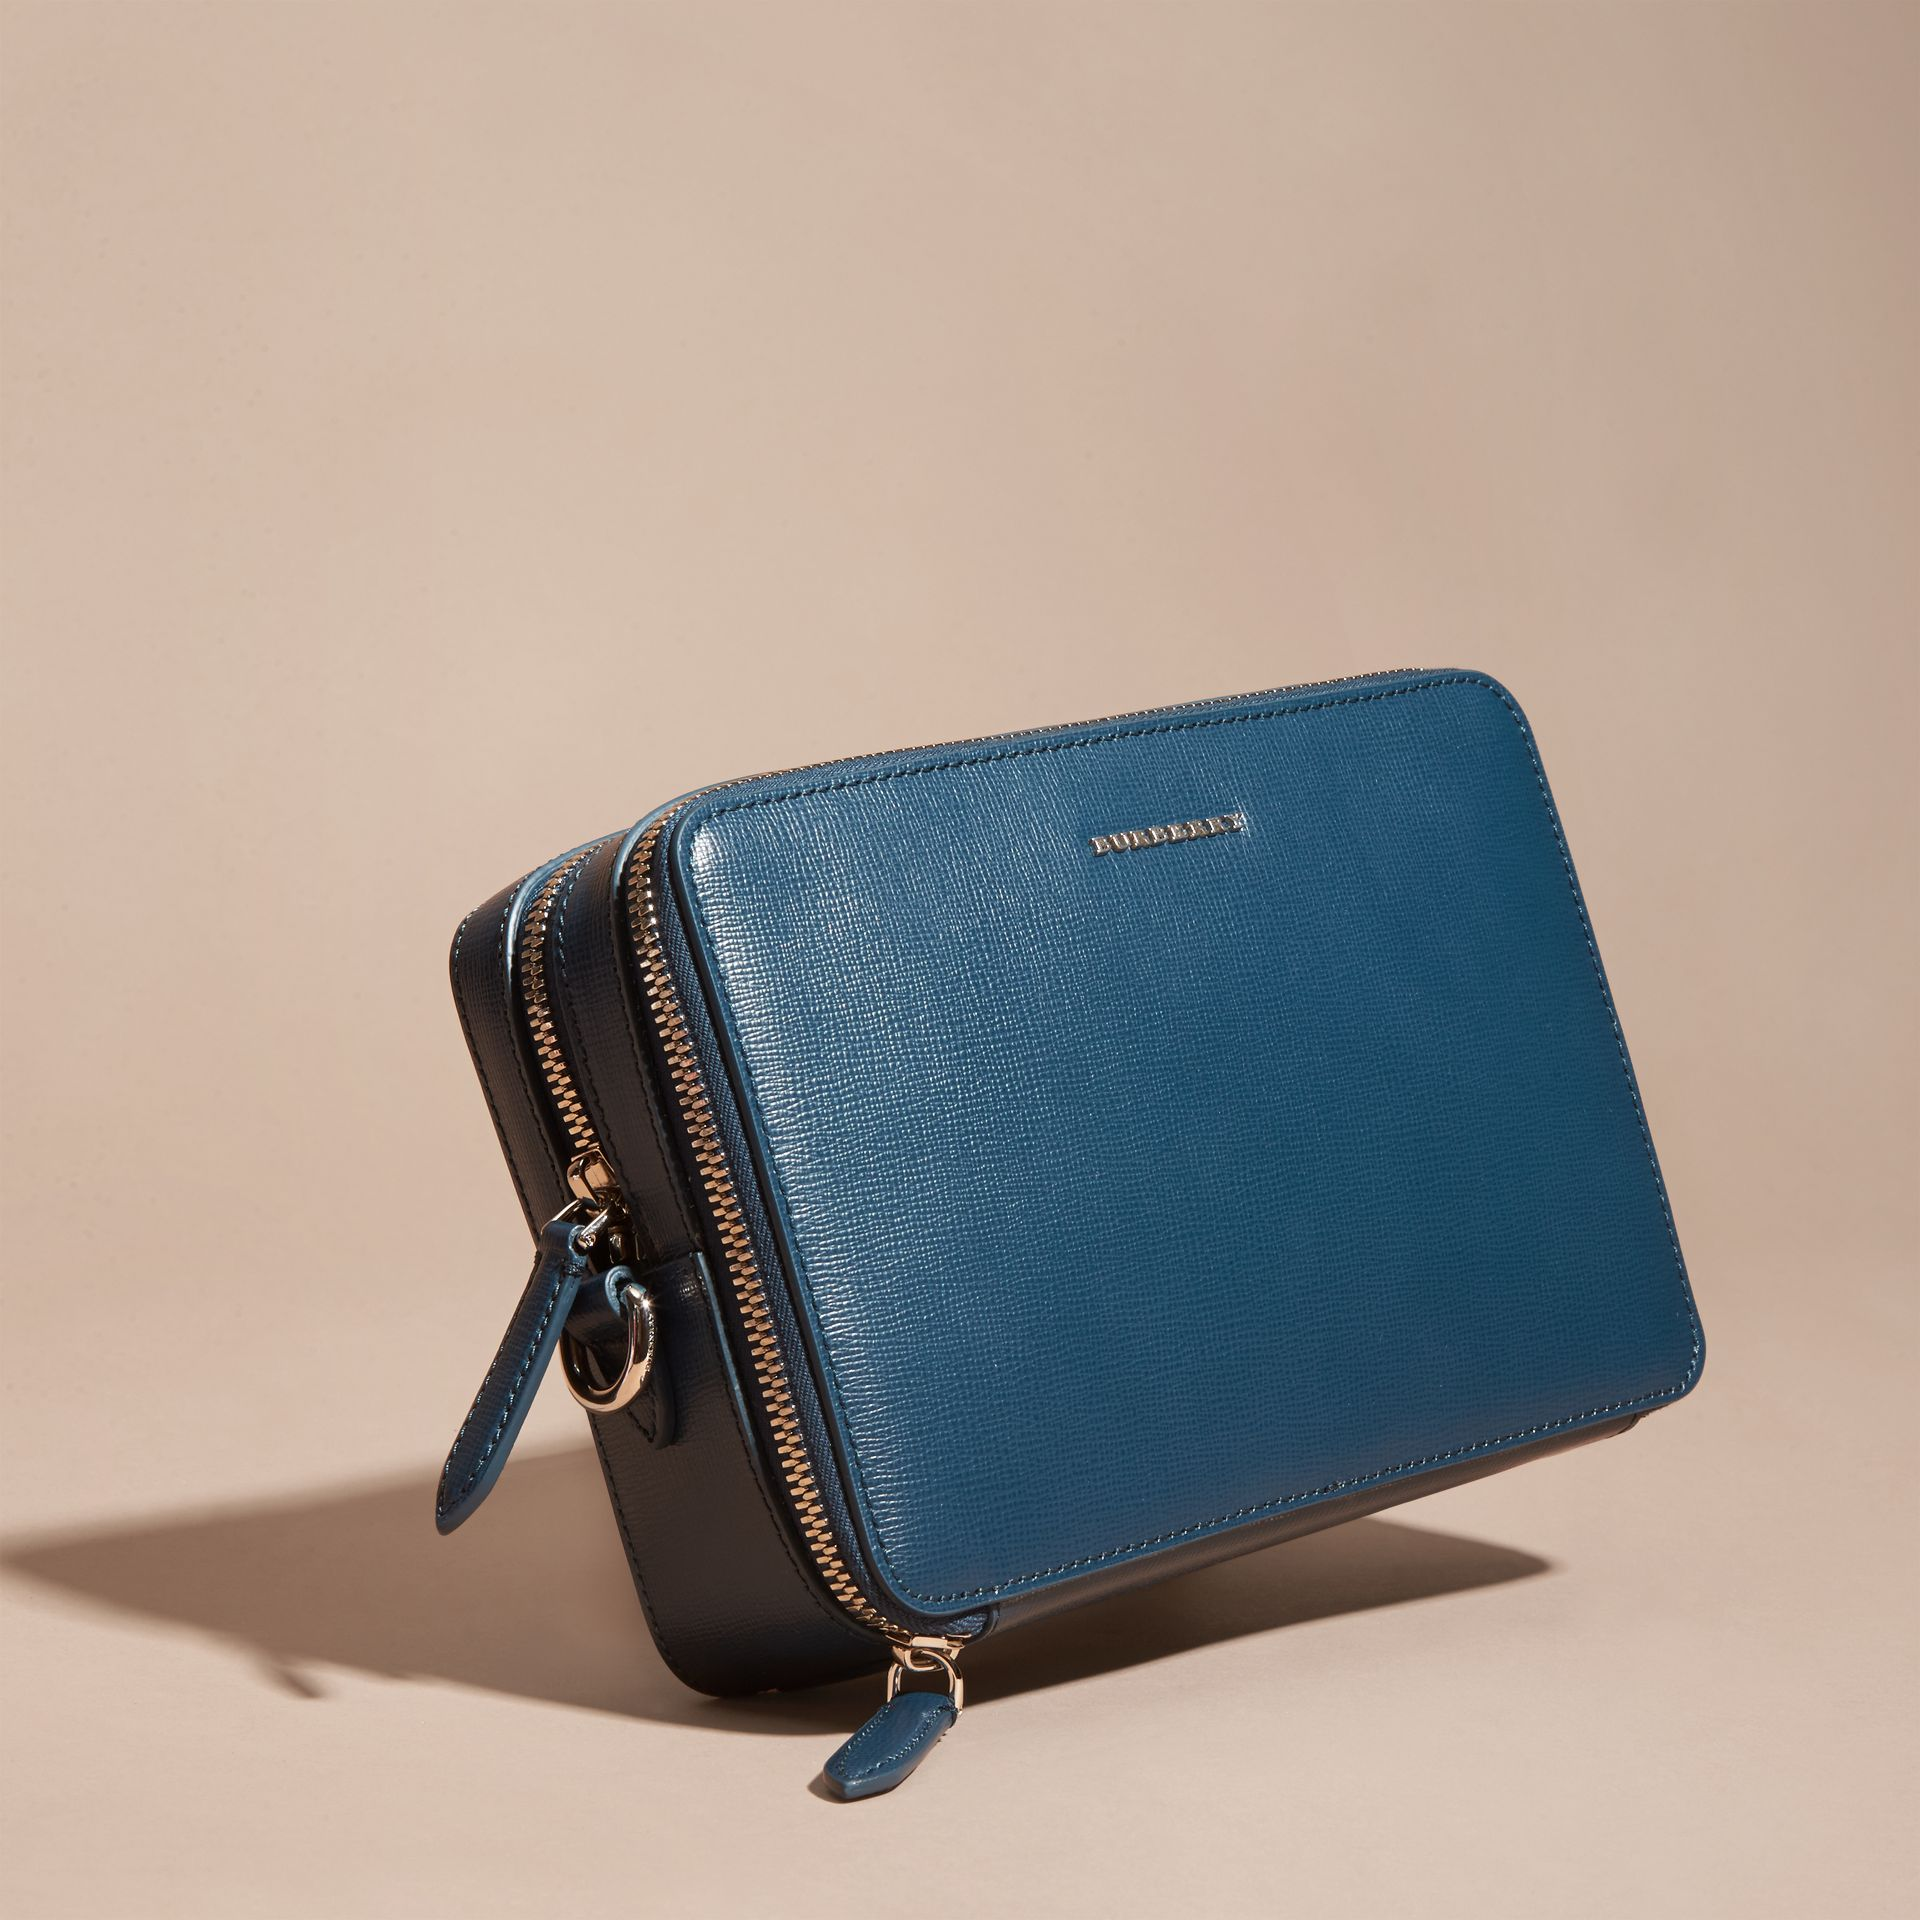 Mineral blue London Leather Pouch Mineral Blue - gallery image 5